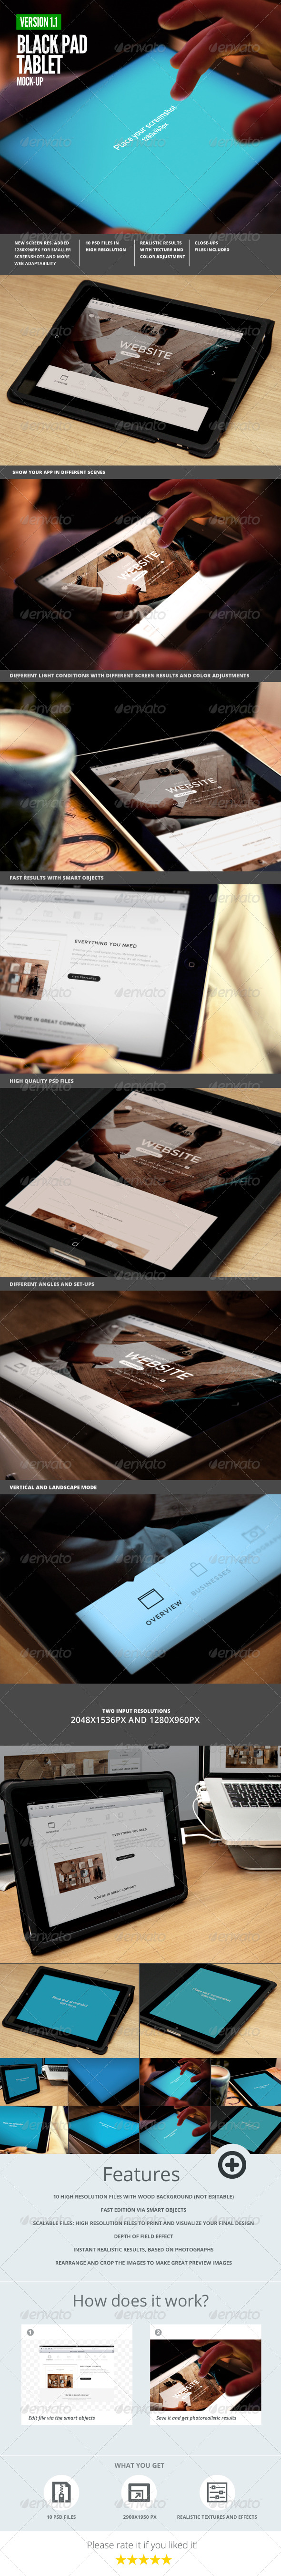 Black Pad | Tablet App UI Mock-Up - Mobile Displays